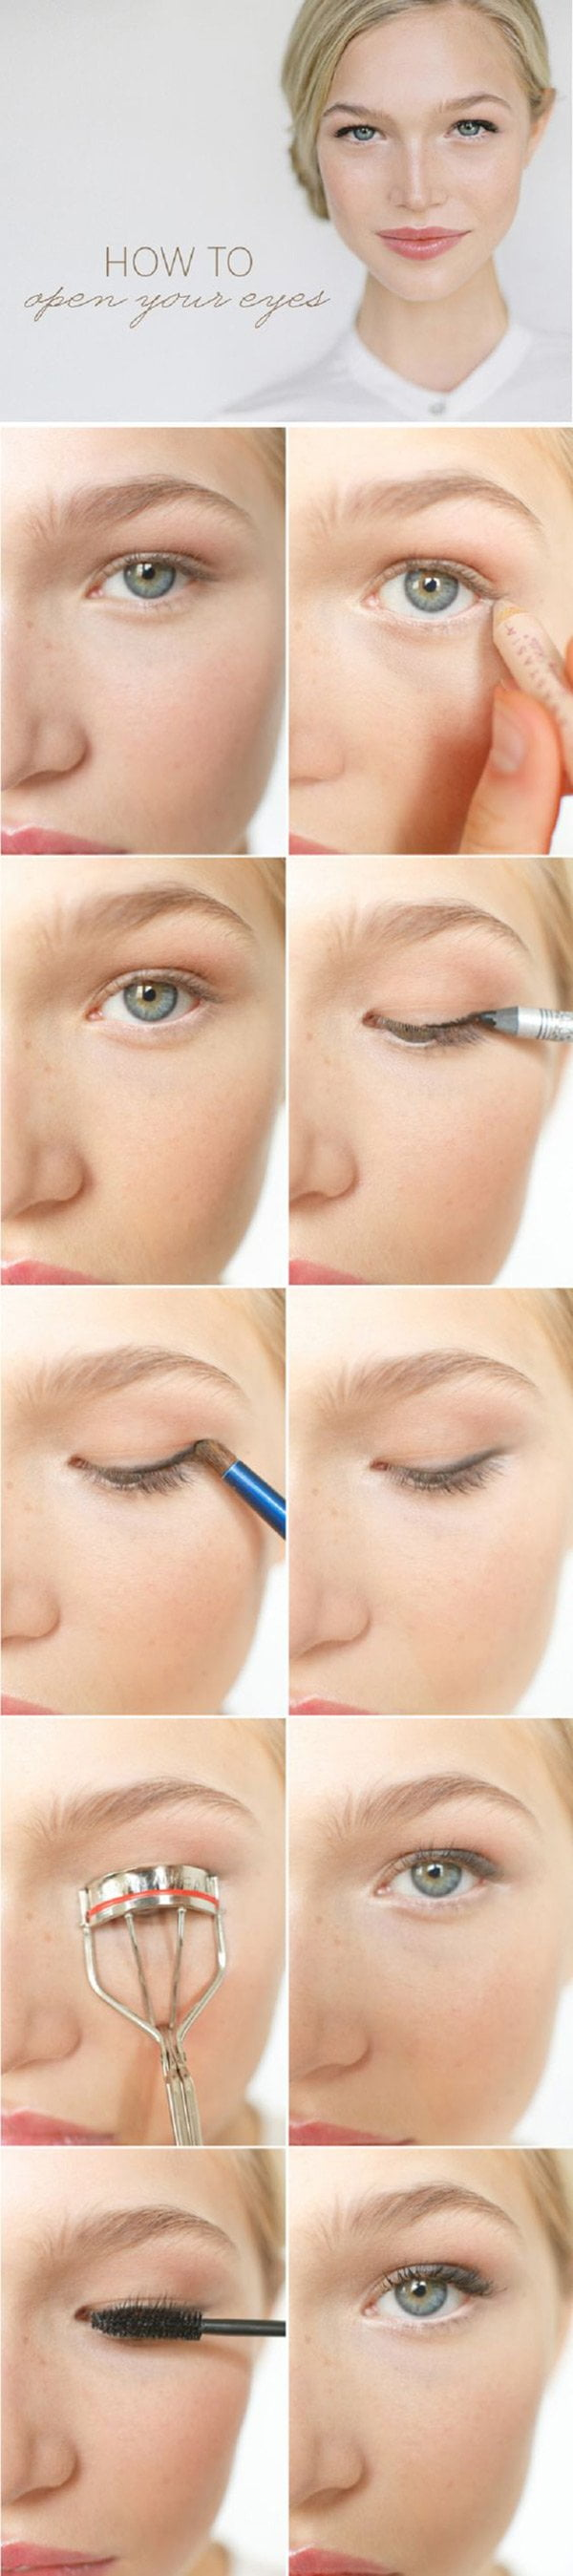 Best Make-Up Tutorials on Pinterest: How to Open Your Eyes with 3 Products or Less